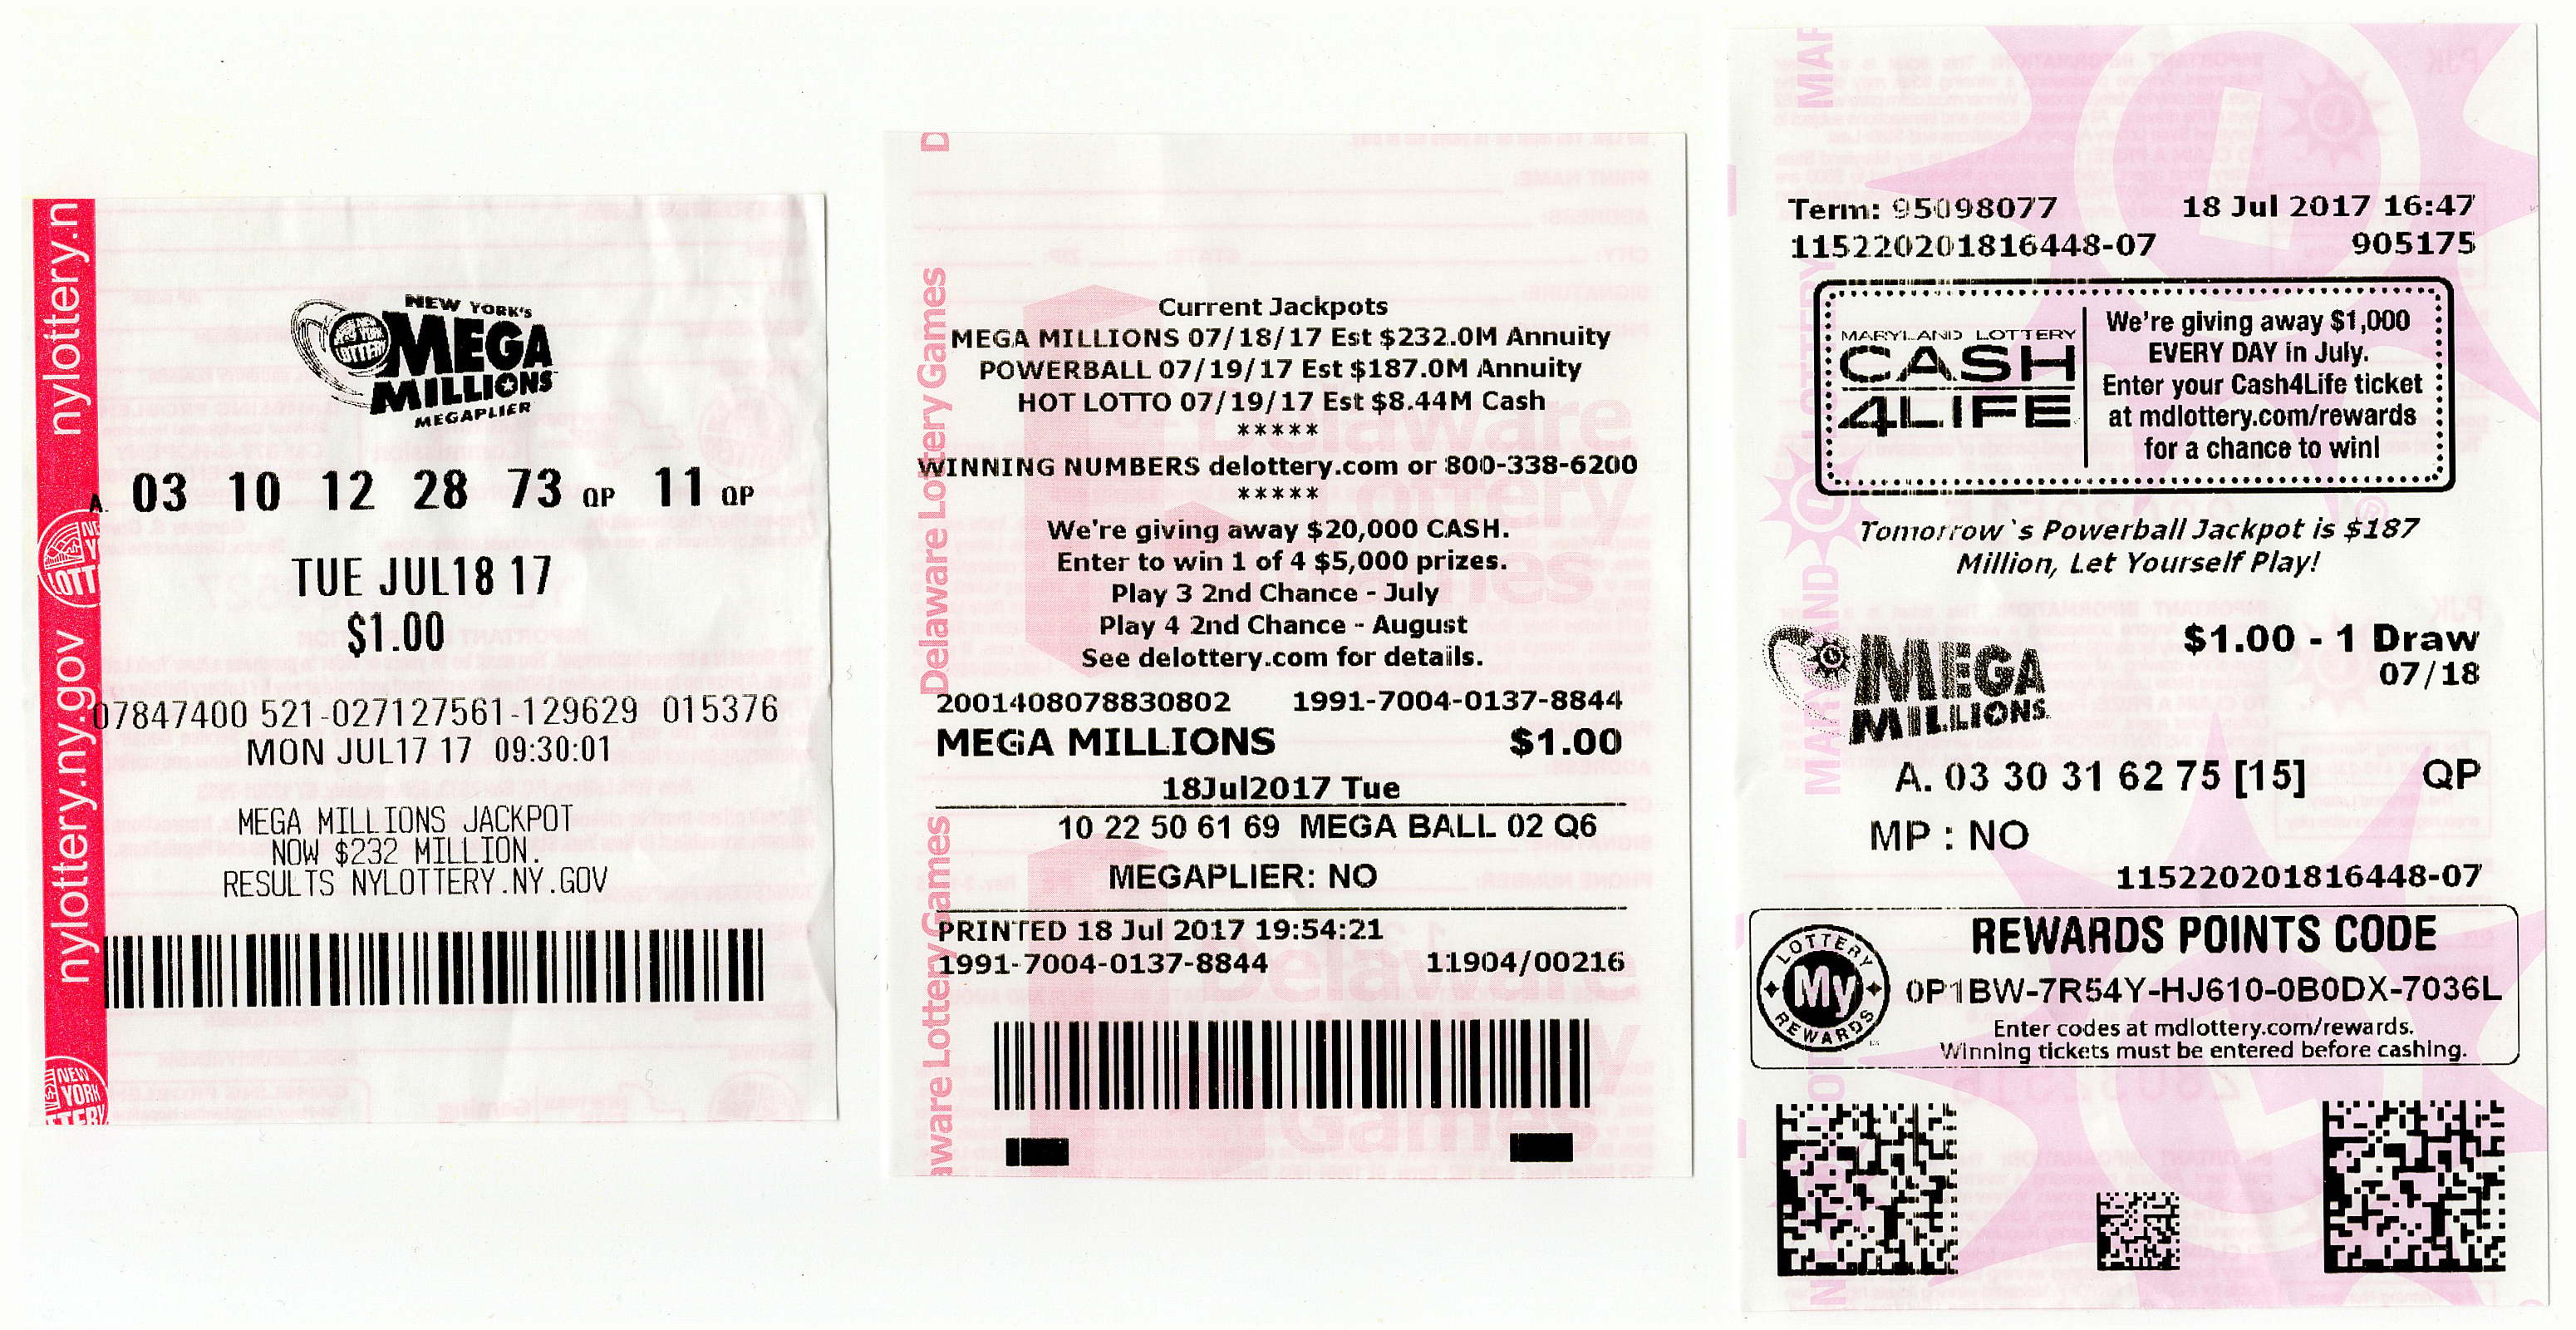 ny lottery drawing results